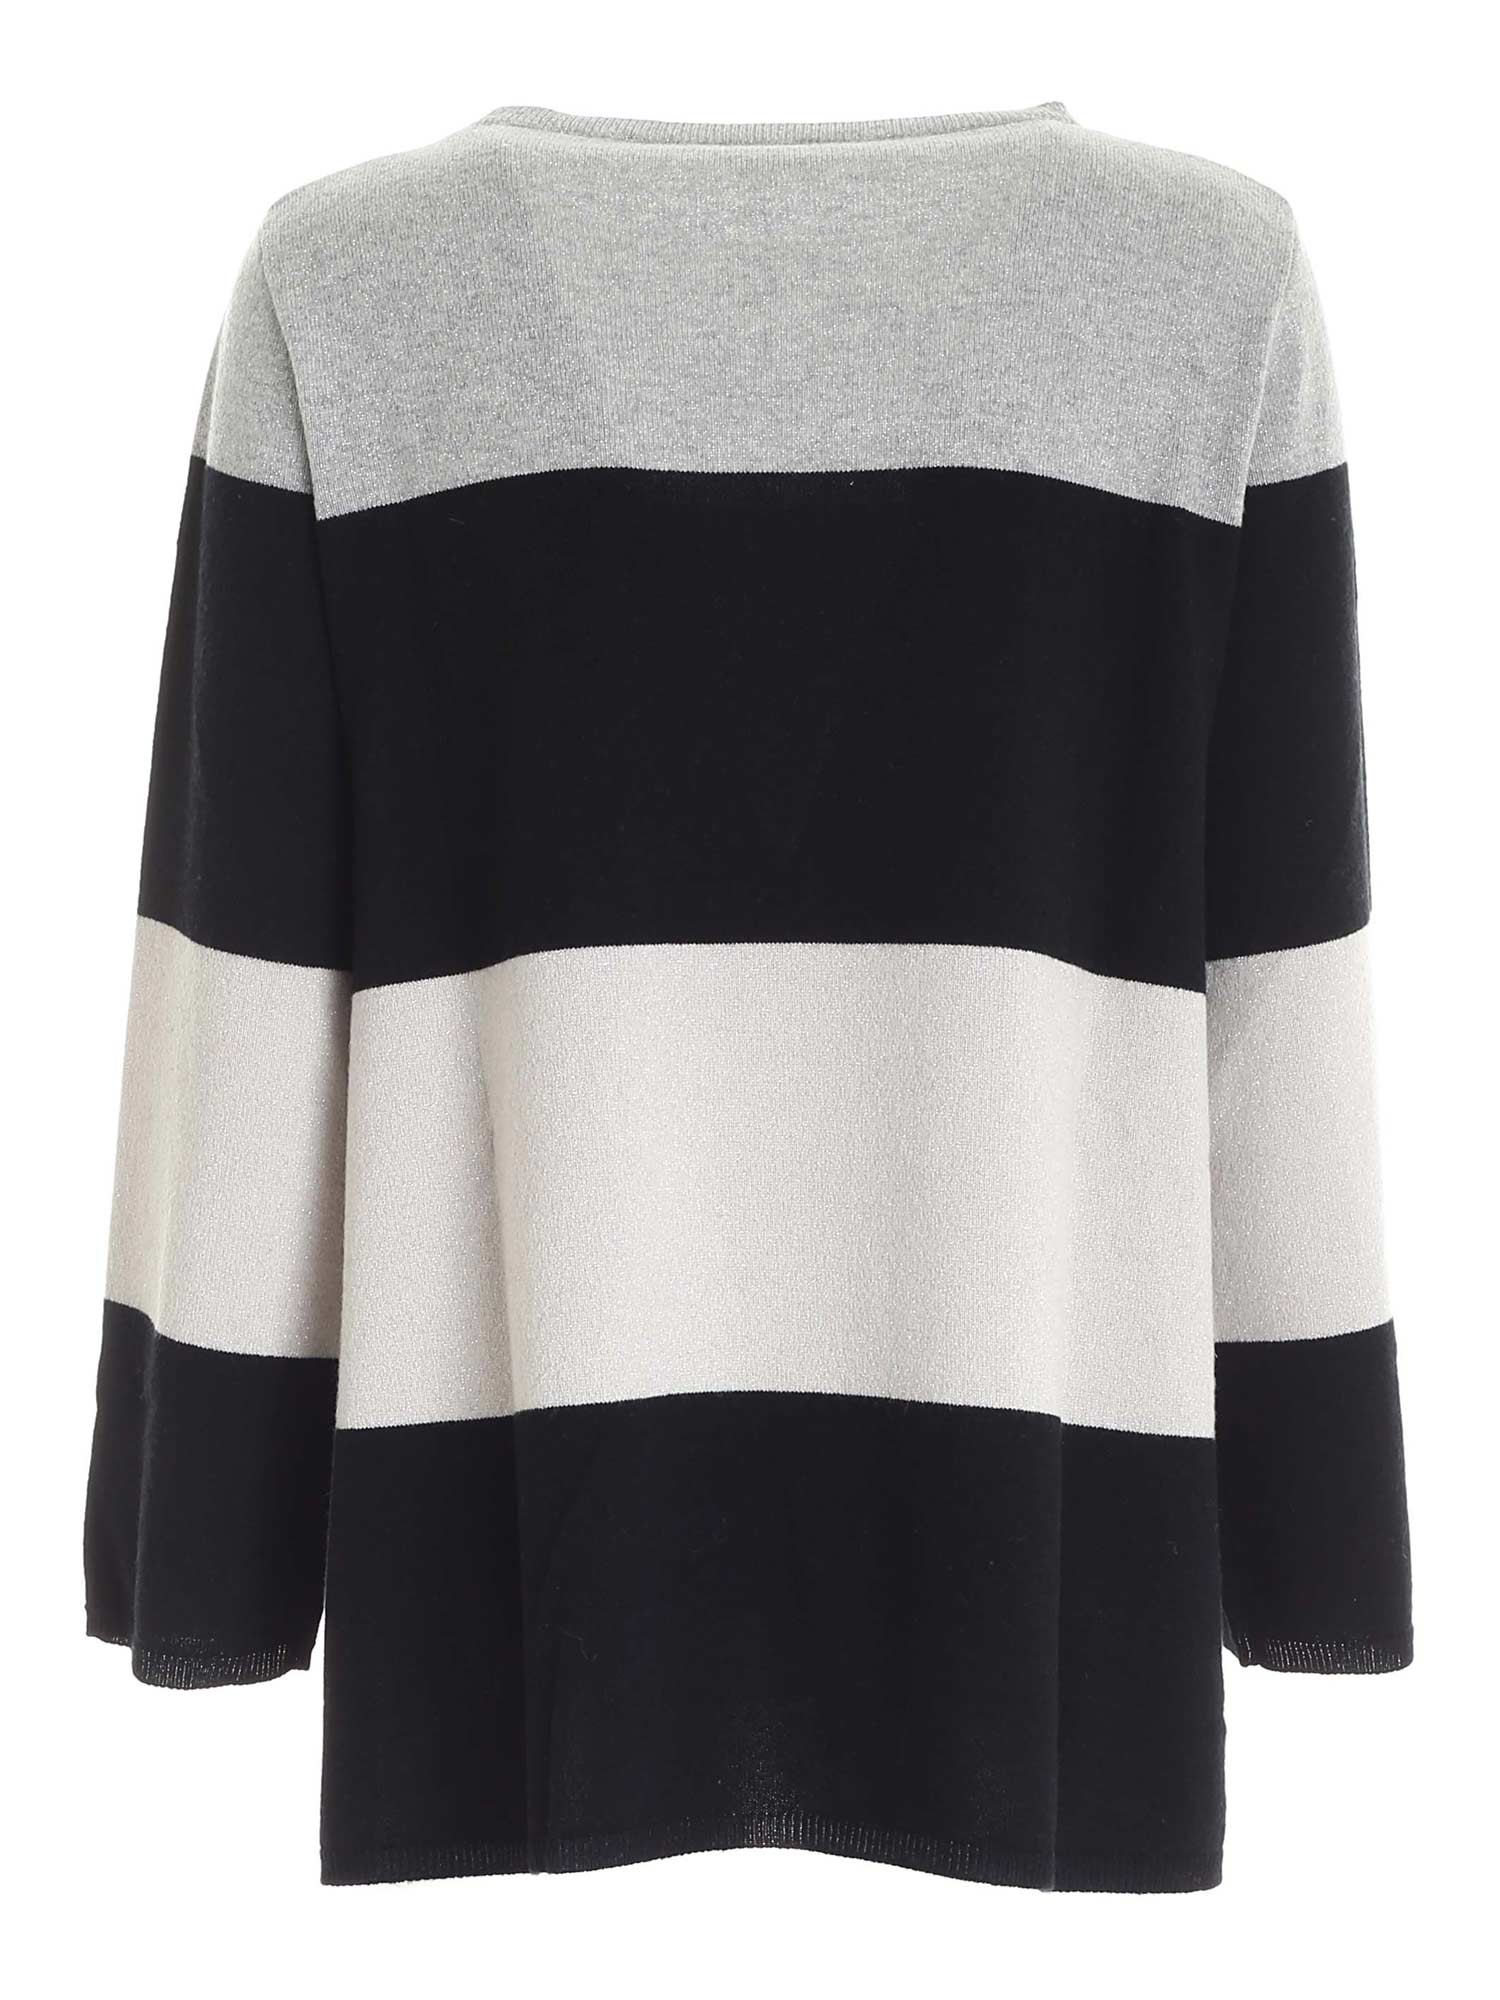 LAMÉ DETAILS PULLOVER IN BLACK, GREY AND BEIGE PAOLO FIORILLO CAPRI | -1384759495 | 15311300013